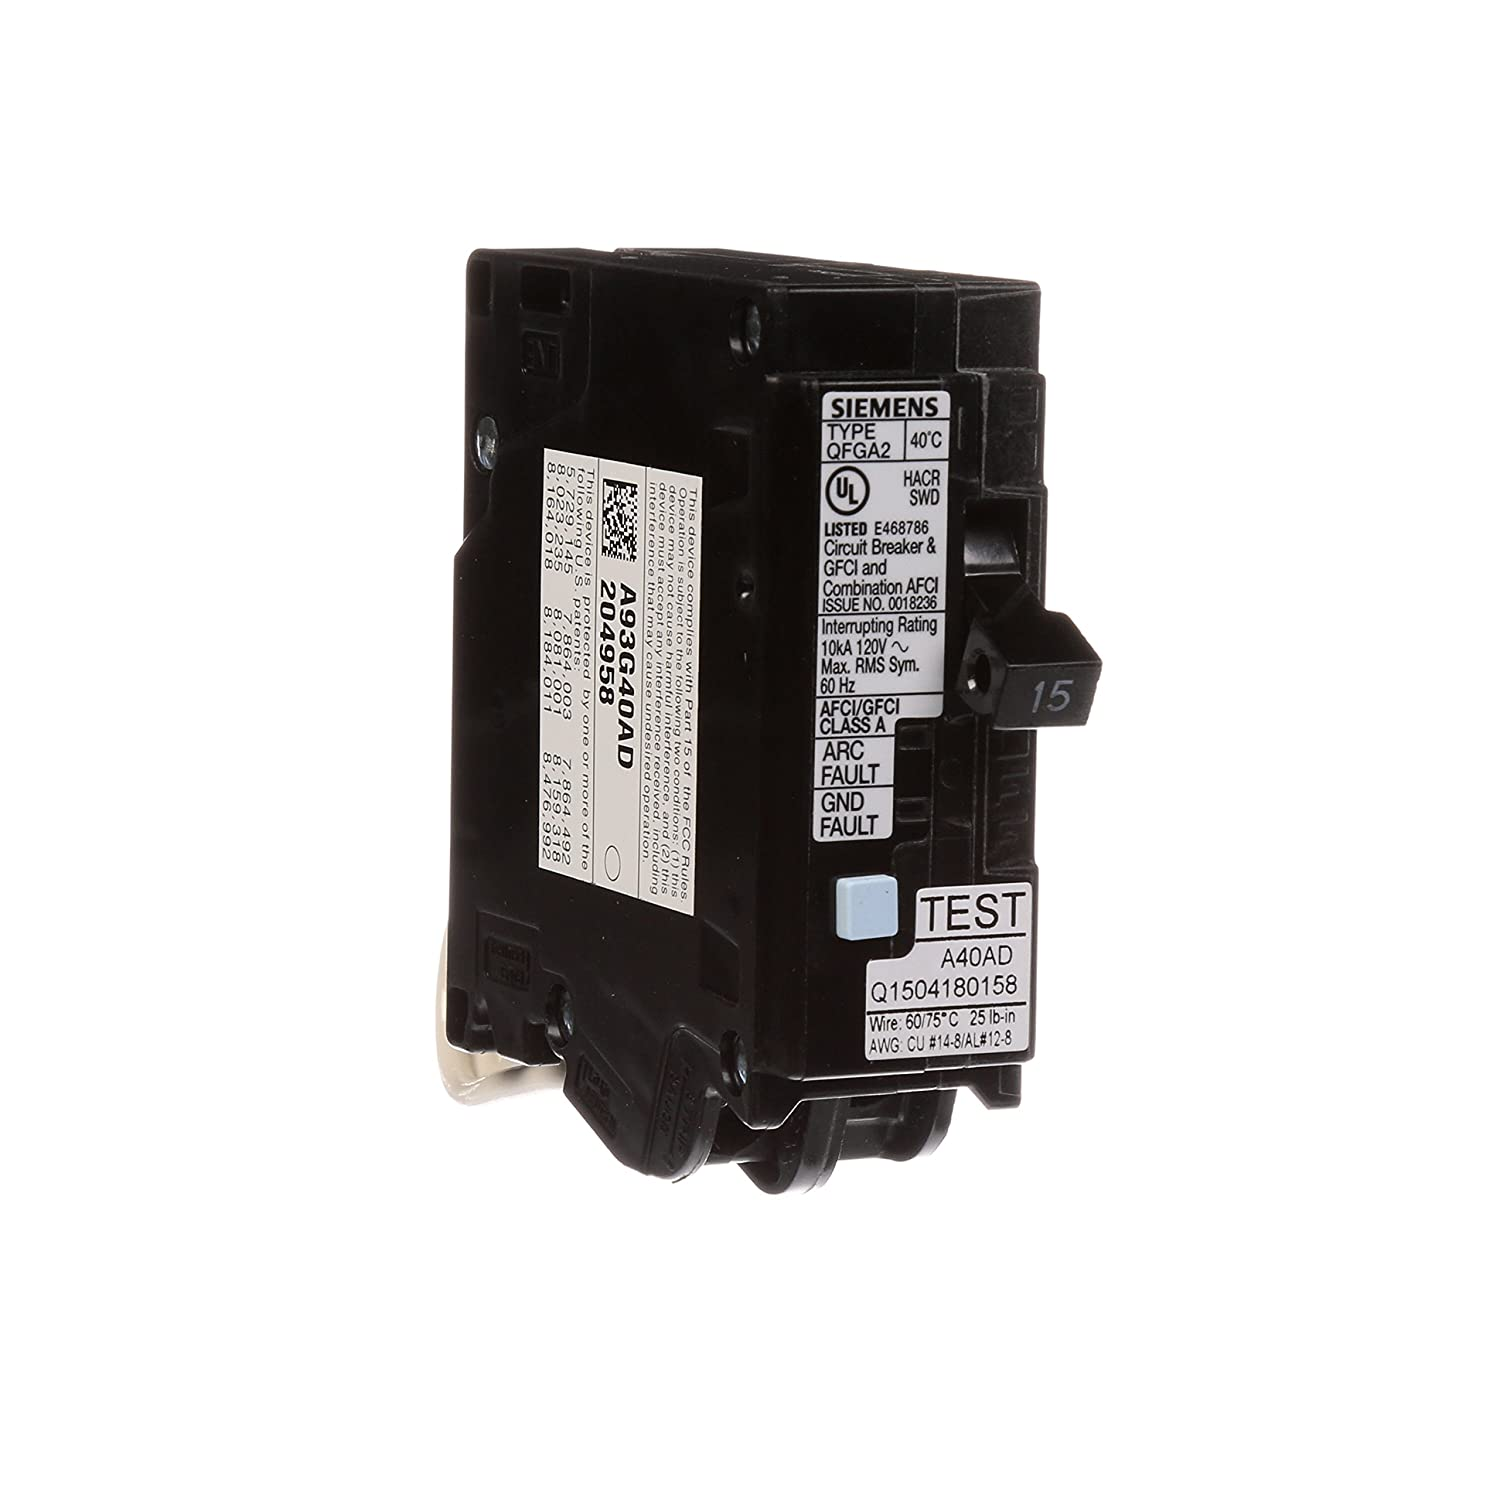 Siemens Q115df 15 Amp Afci Gfci Dual Function Circuit Breaker Plug Electrical Wiring In The Home Trips On Load Center Style